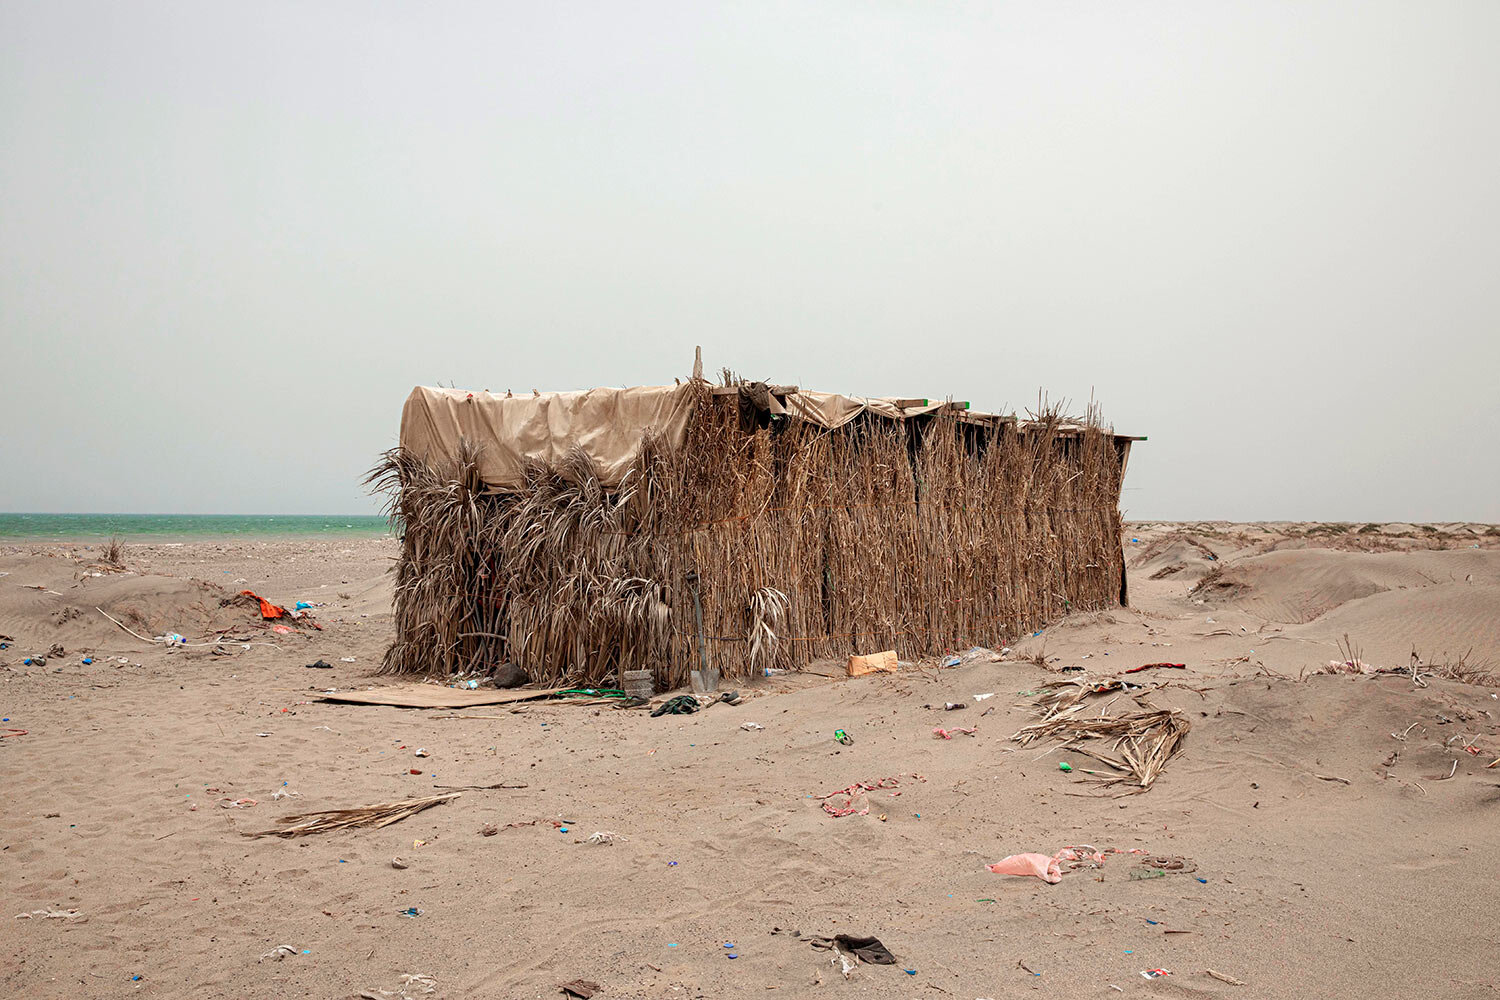 A hosh owned by smugglers is shown where migrants stay after their arrival, in Lahj, Yemen. (AP Photo/Nariman El-Mofty)